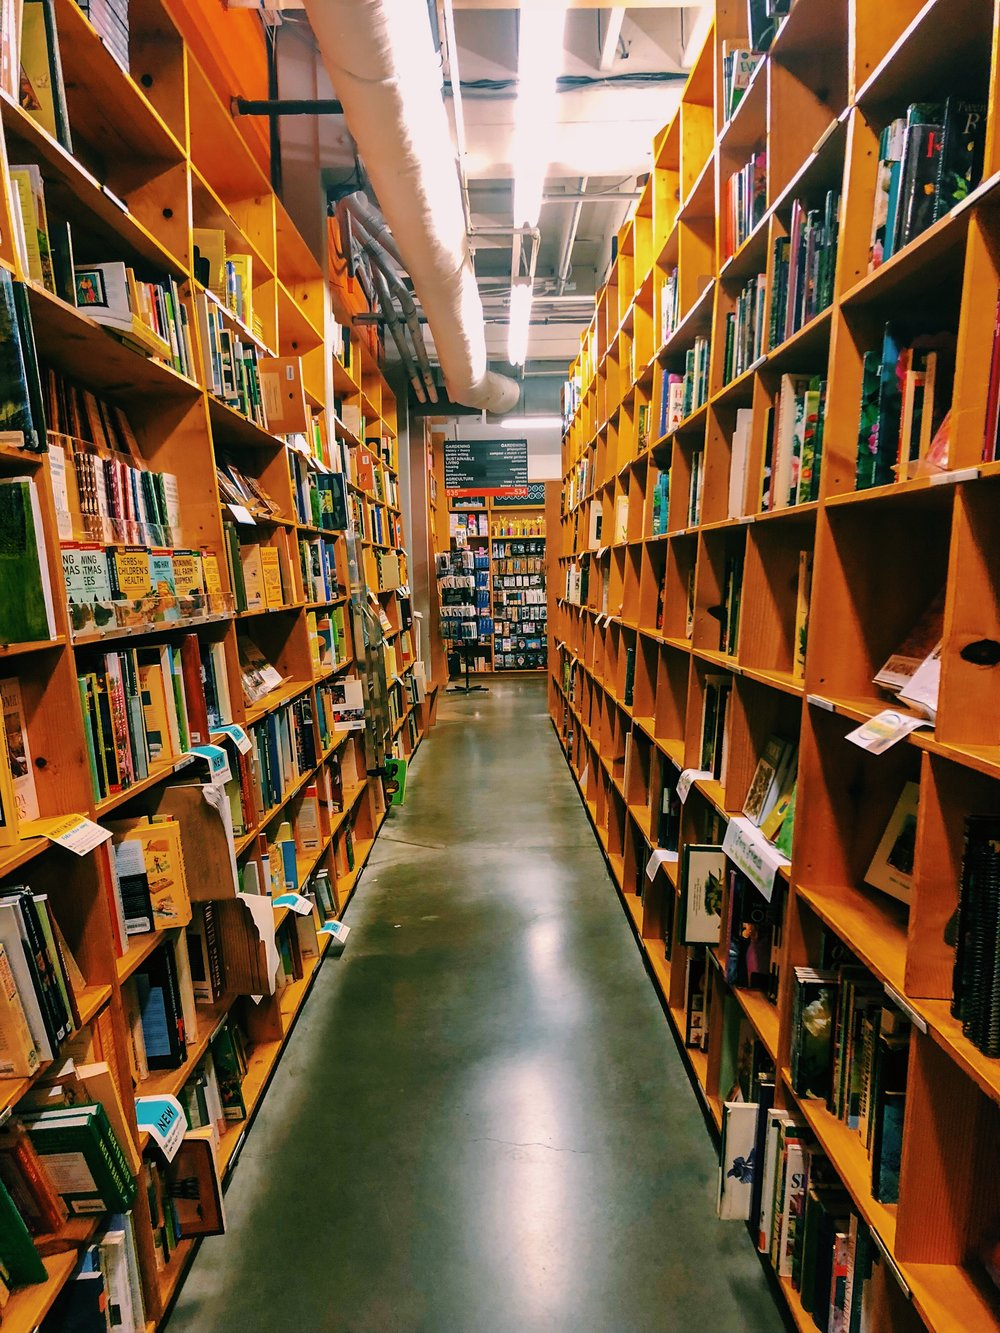 Spend the day getting lost in  Powell's City of Books